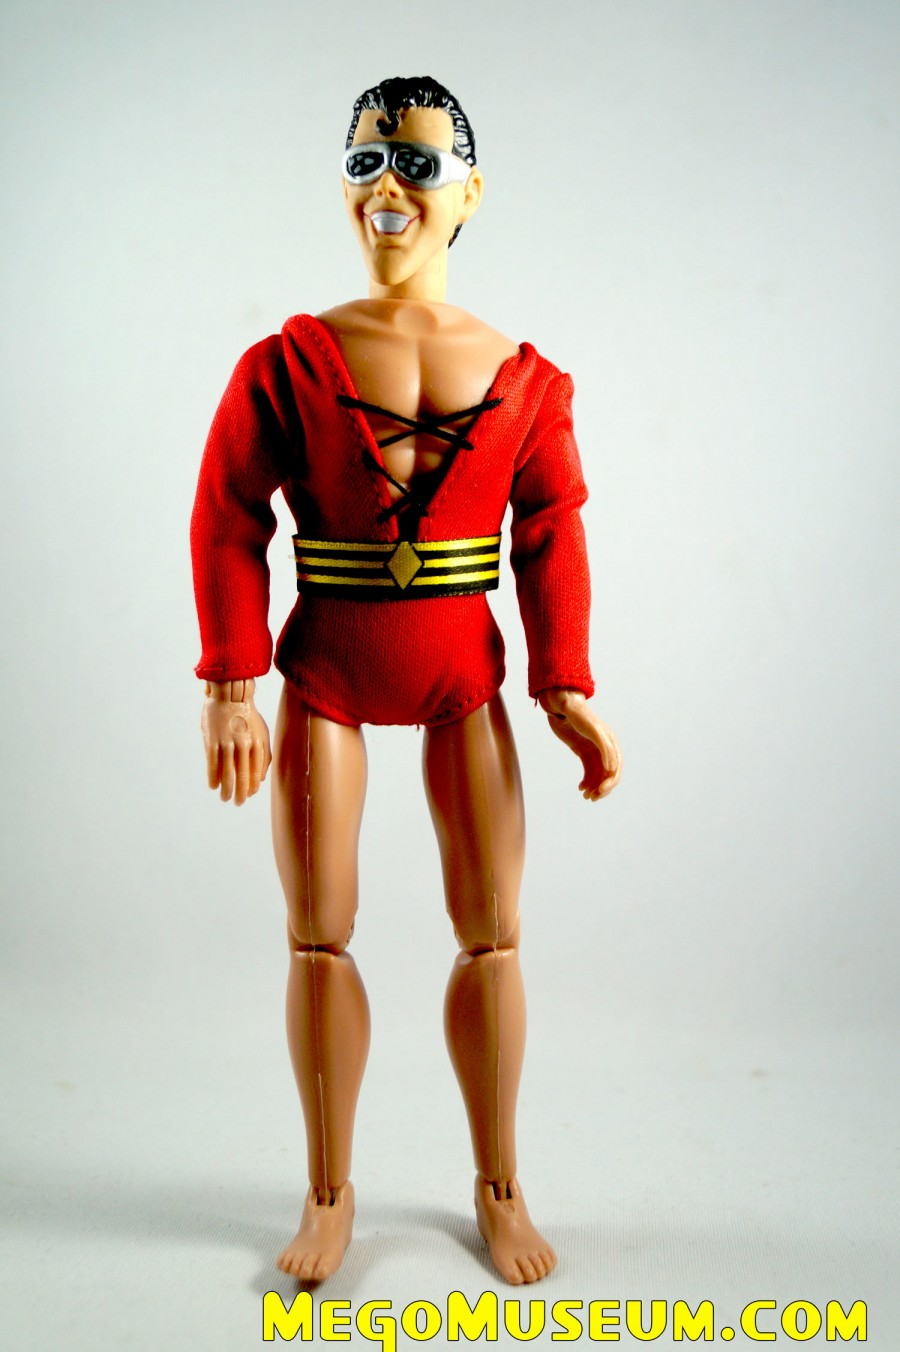 Now In Stock Canada >> Up Close: Plastic Man by Figures Toy Company | Mego Museum